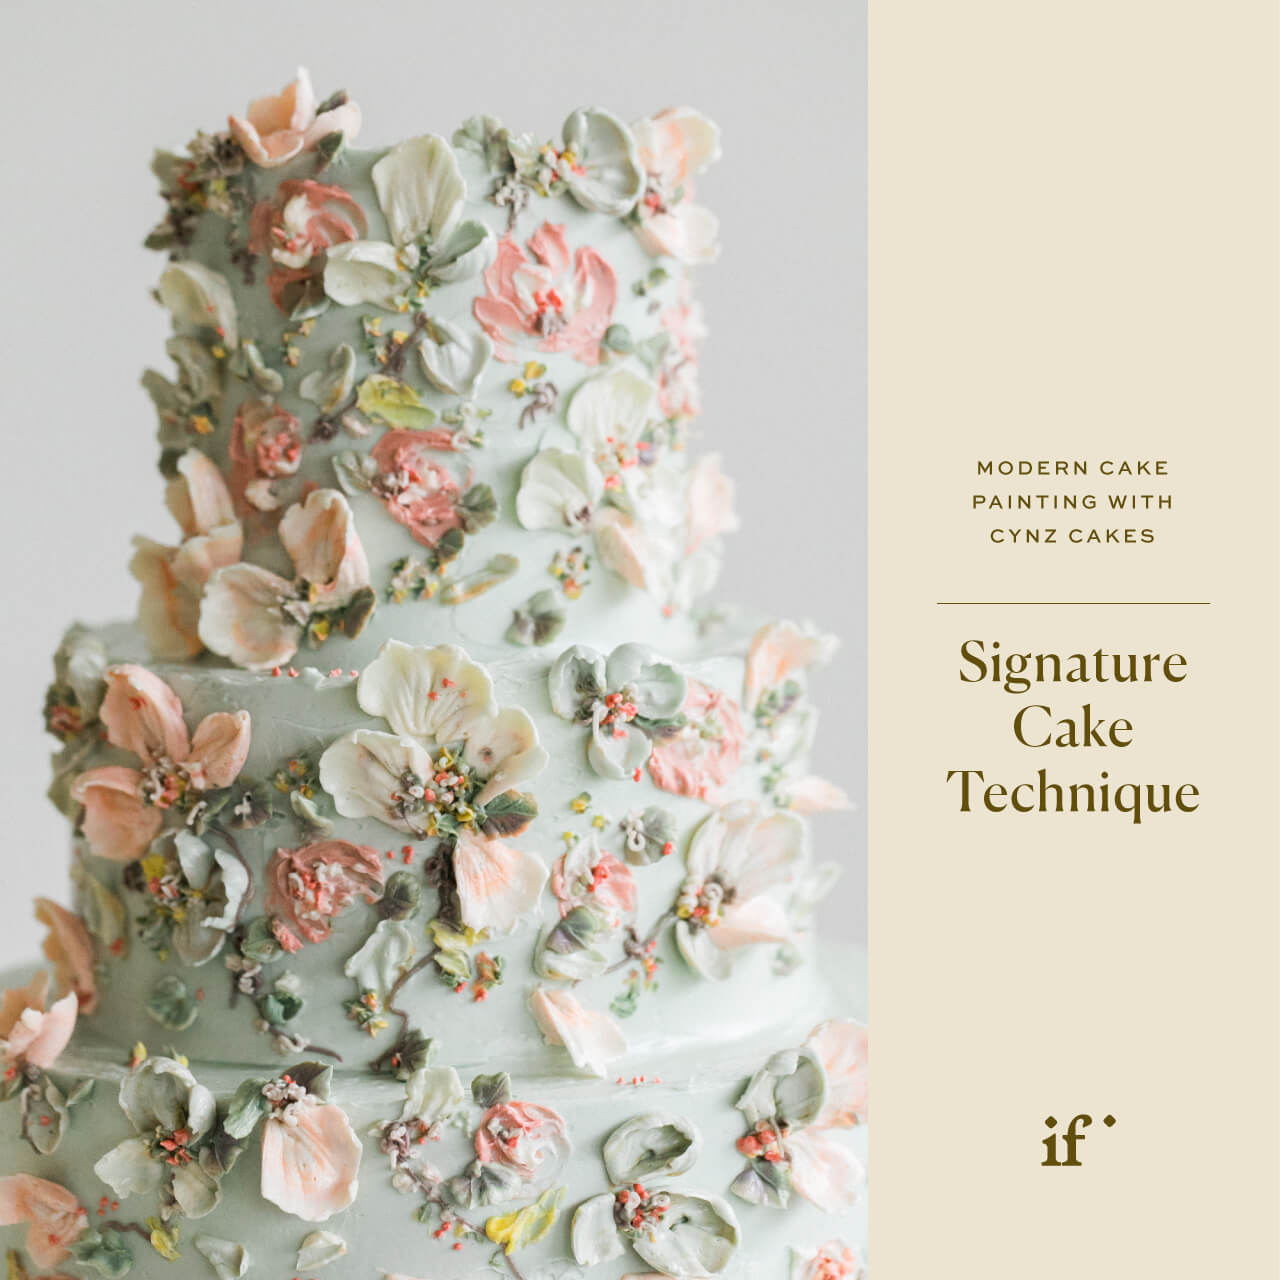 Signature Cake Technique